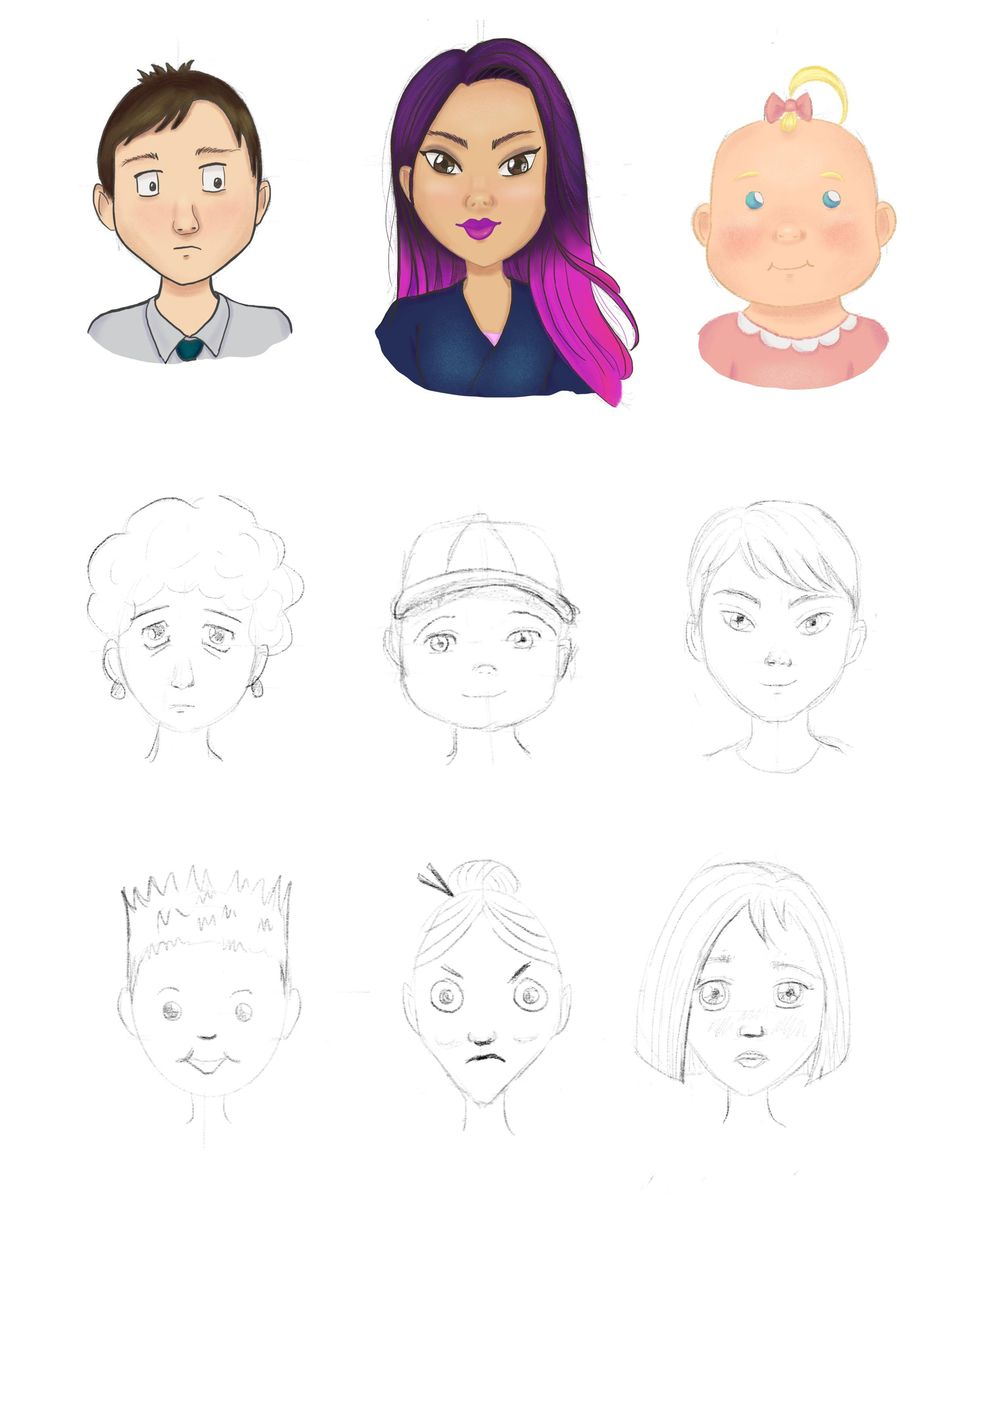 Characters drawn  and colored in Procreate - image 1 - student project